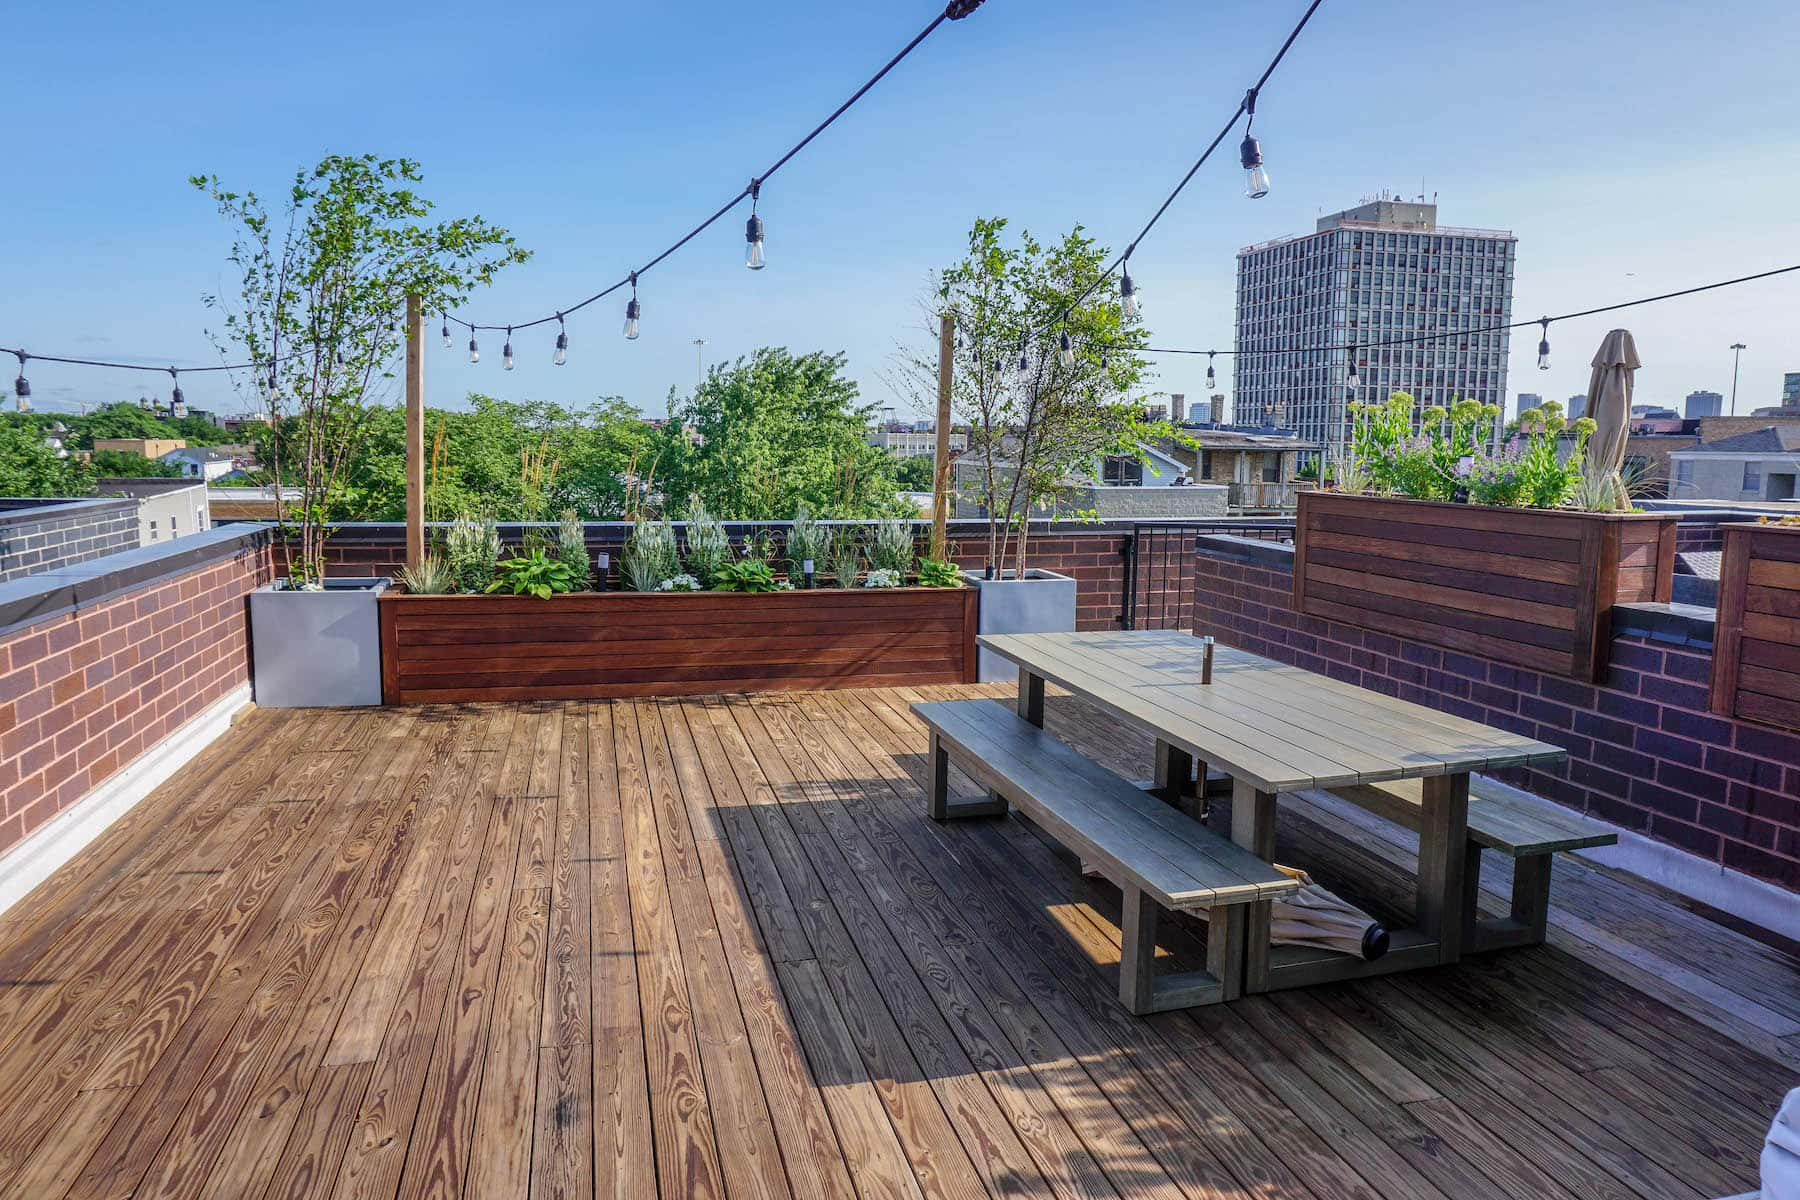 Rooftop Deck With Dining and Planters